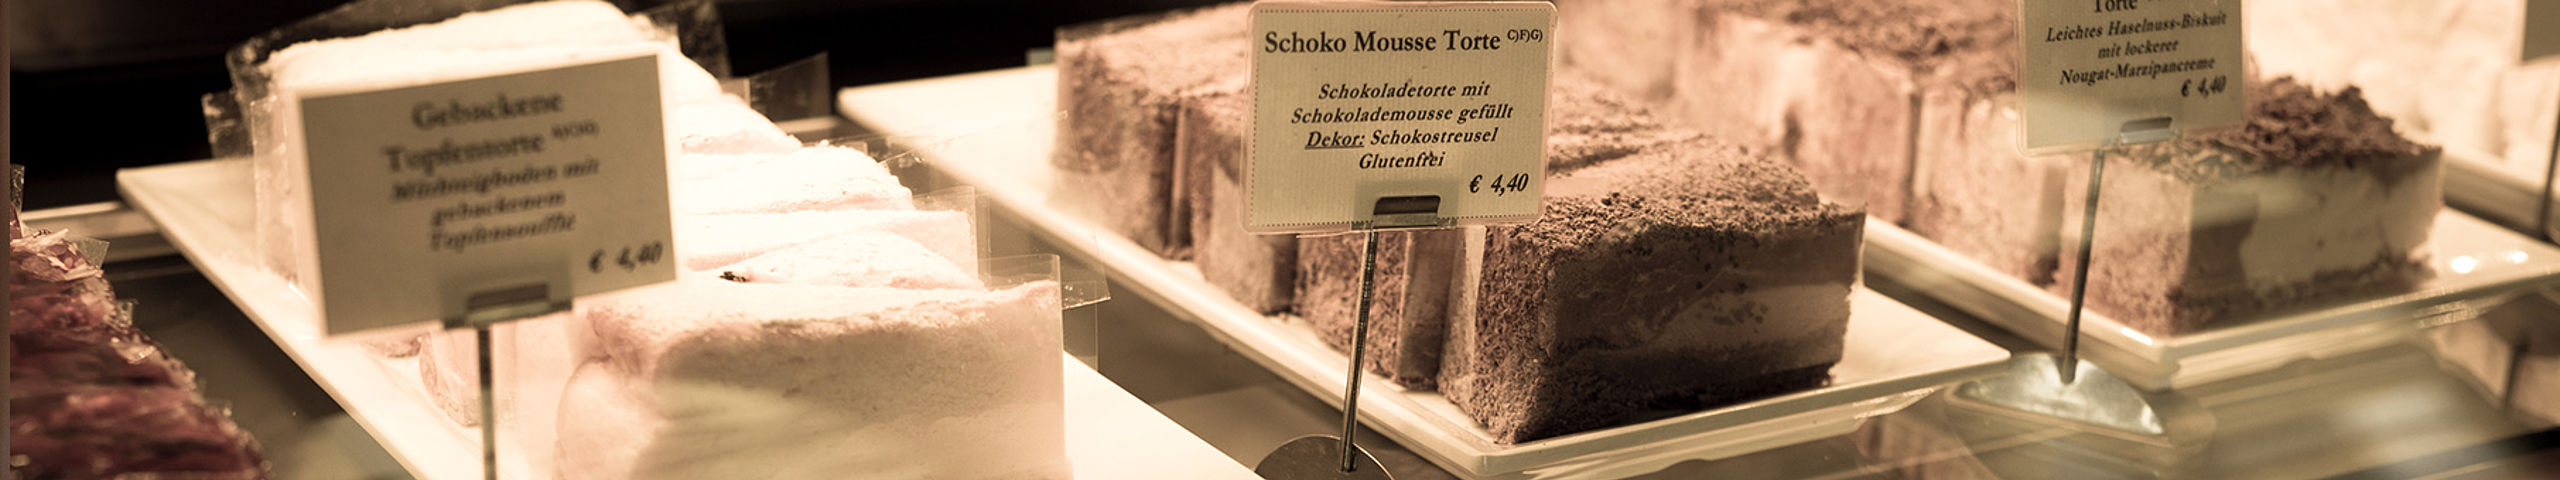 The cake showcase is the eye-catcher of the Viennese coffeehouse